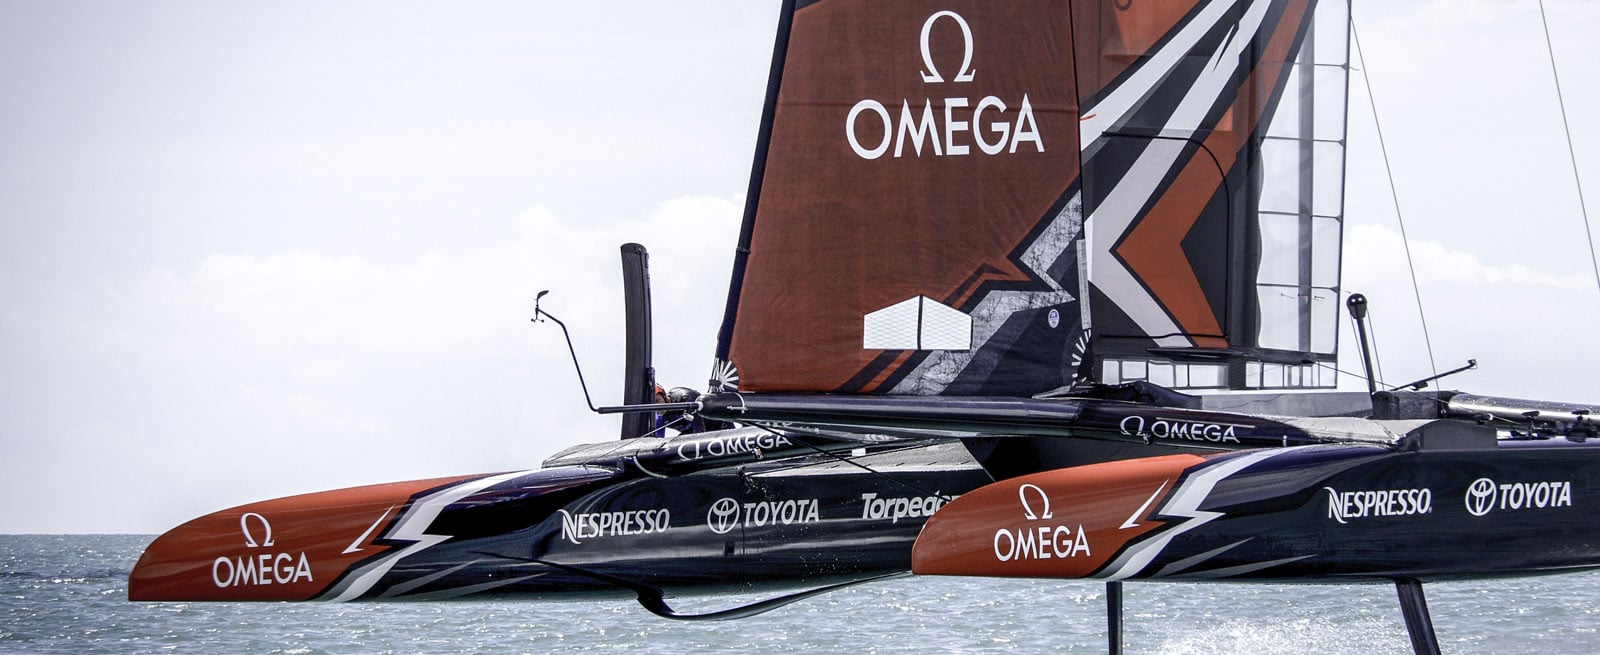 The catamaran of the Emirates Team New Zealand, sponsored by Omega